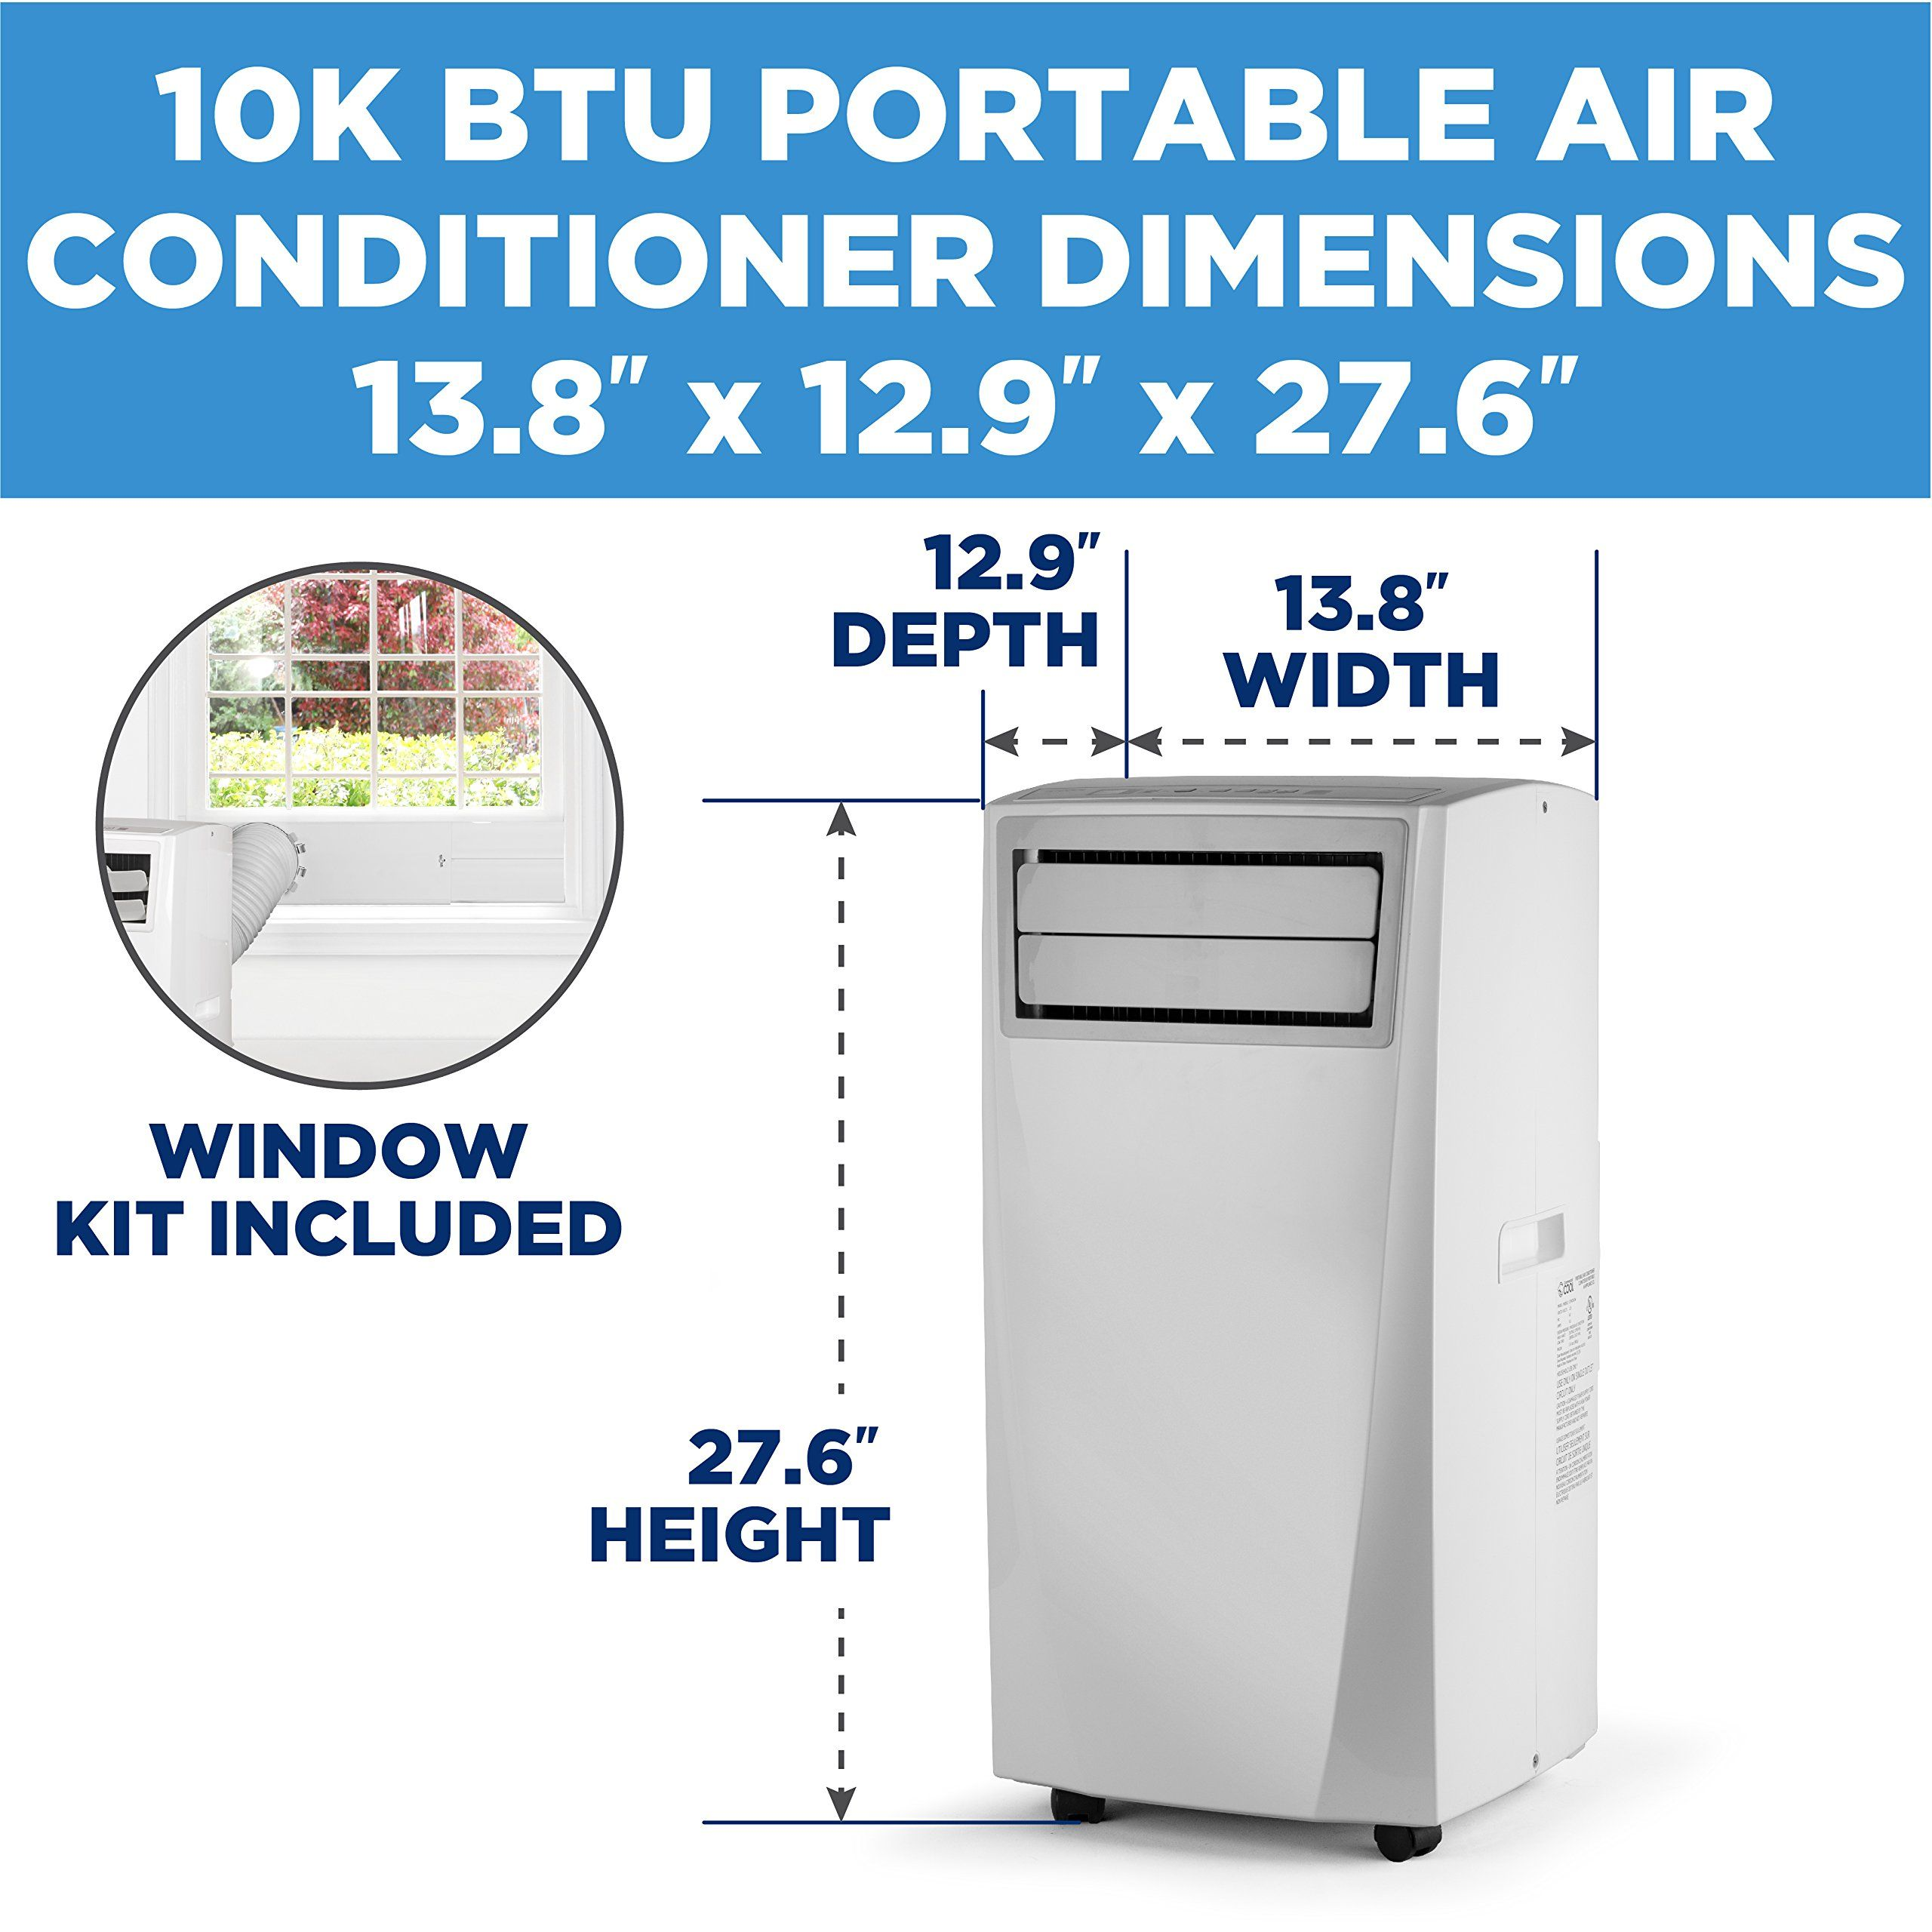 Commercial Cool Portable Air Conditioner 10000 BTU with